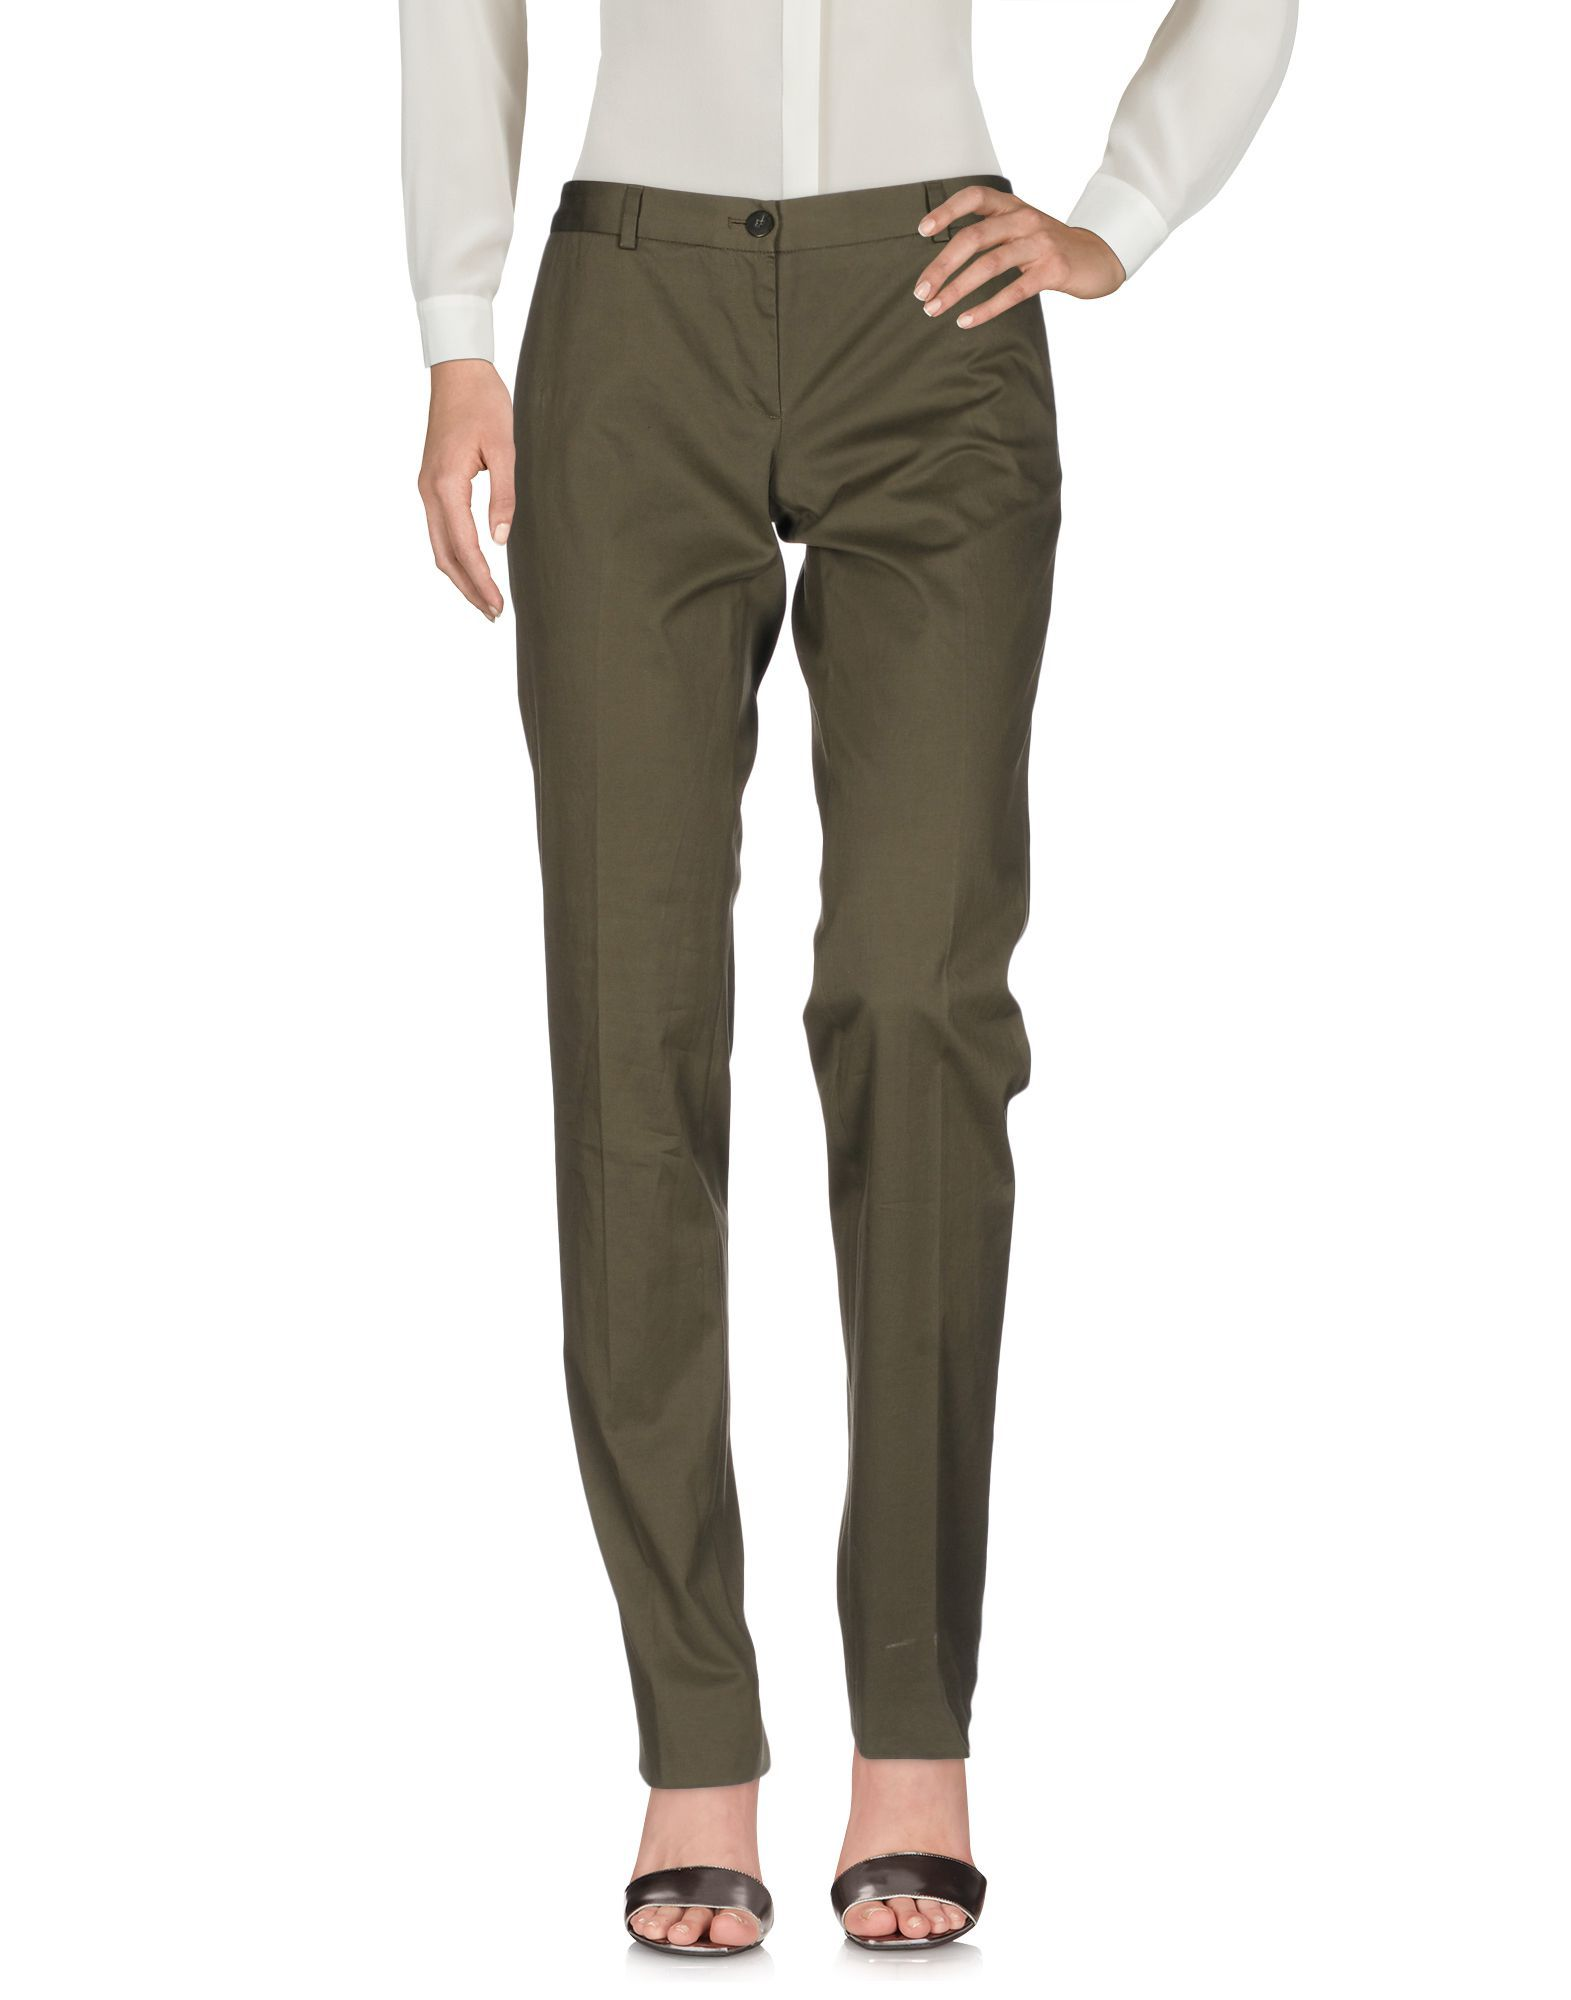 Mauro Grifoni Military Green Cotton Trousers